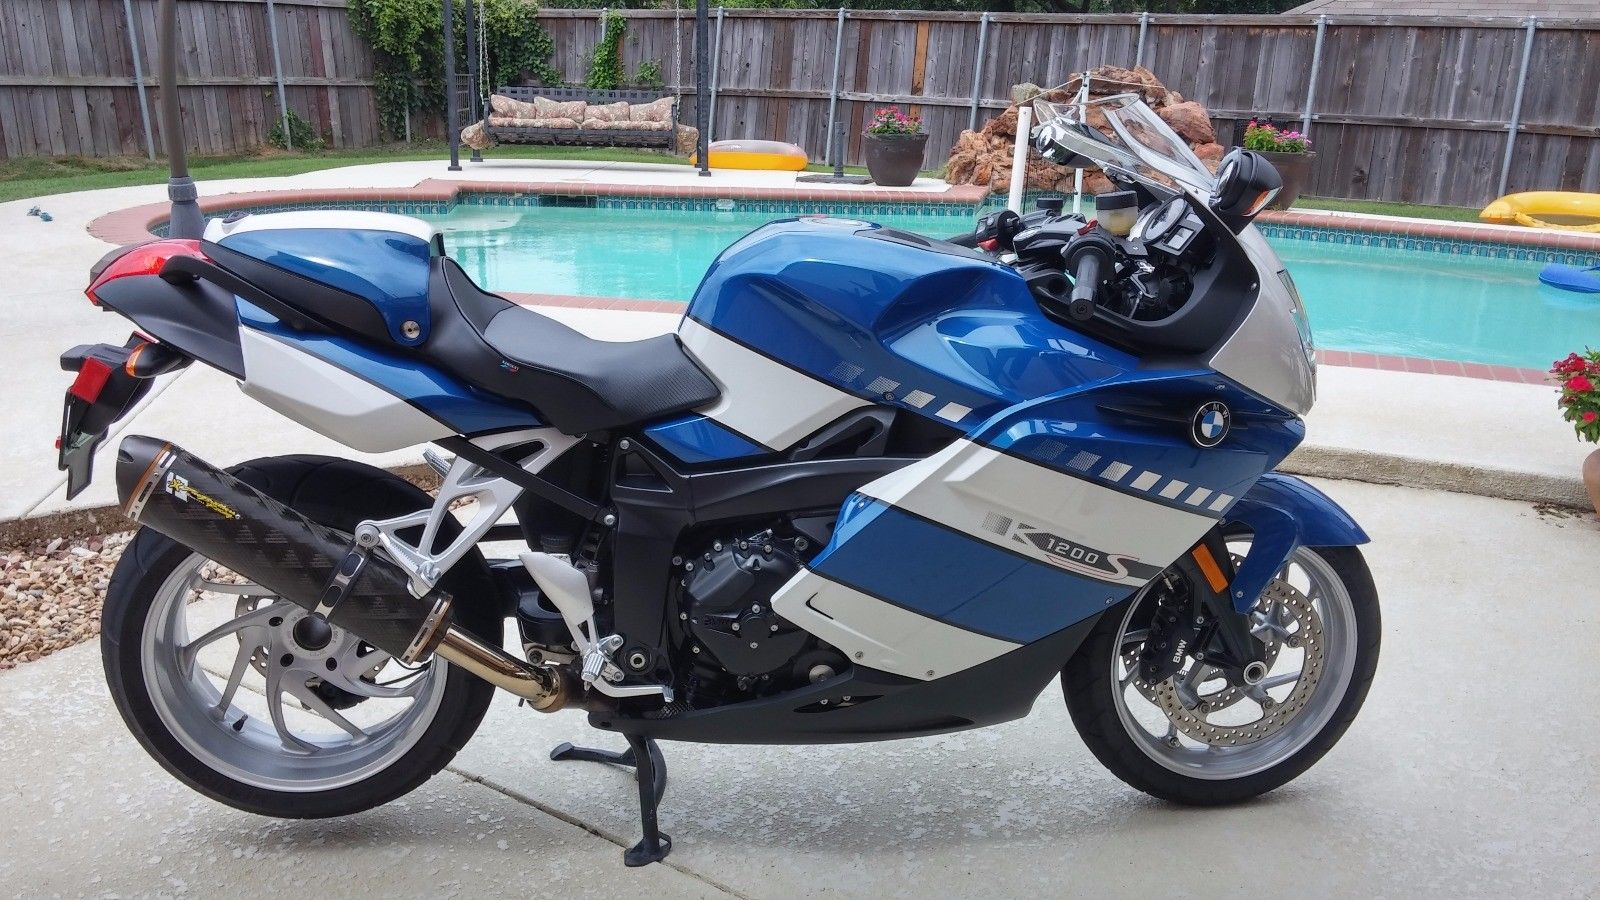 land speed record holder 2006 bmw k1200s rare sportbikes for sale. Black Bedroom Furniture Sets. Home Design Ideas